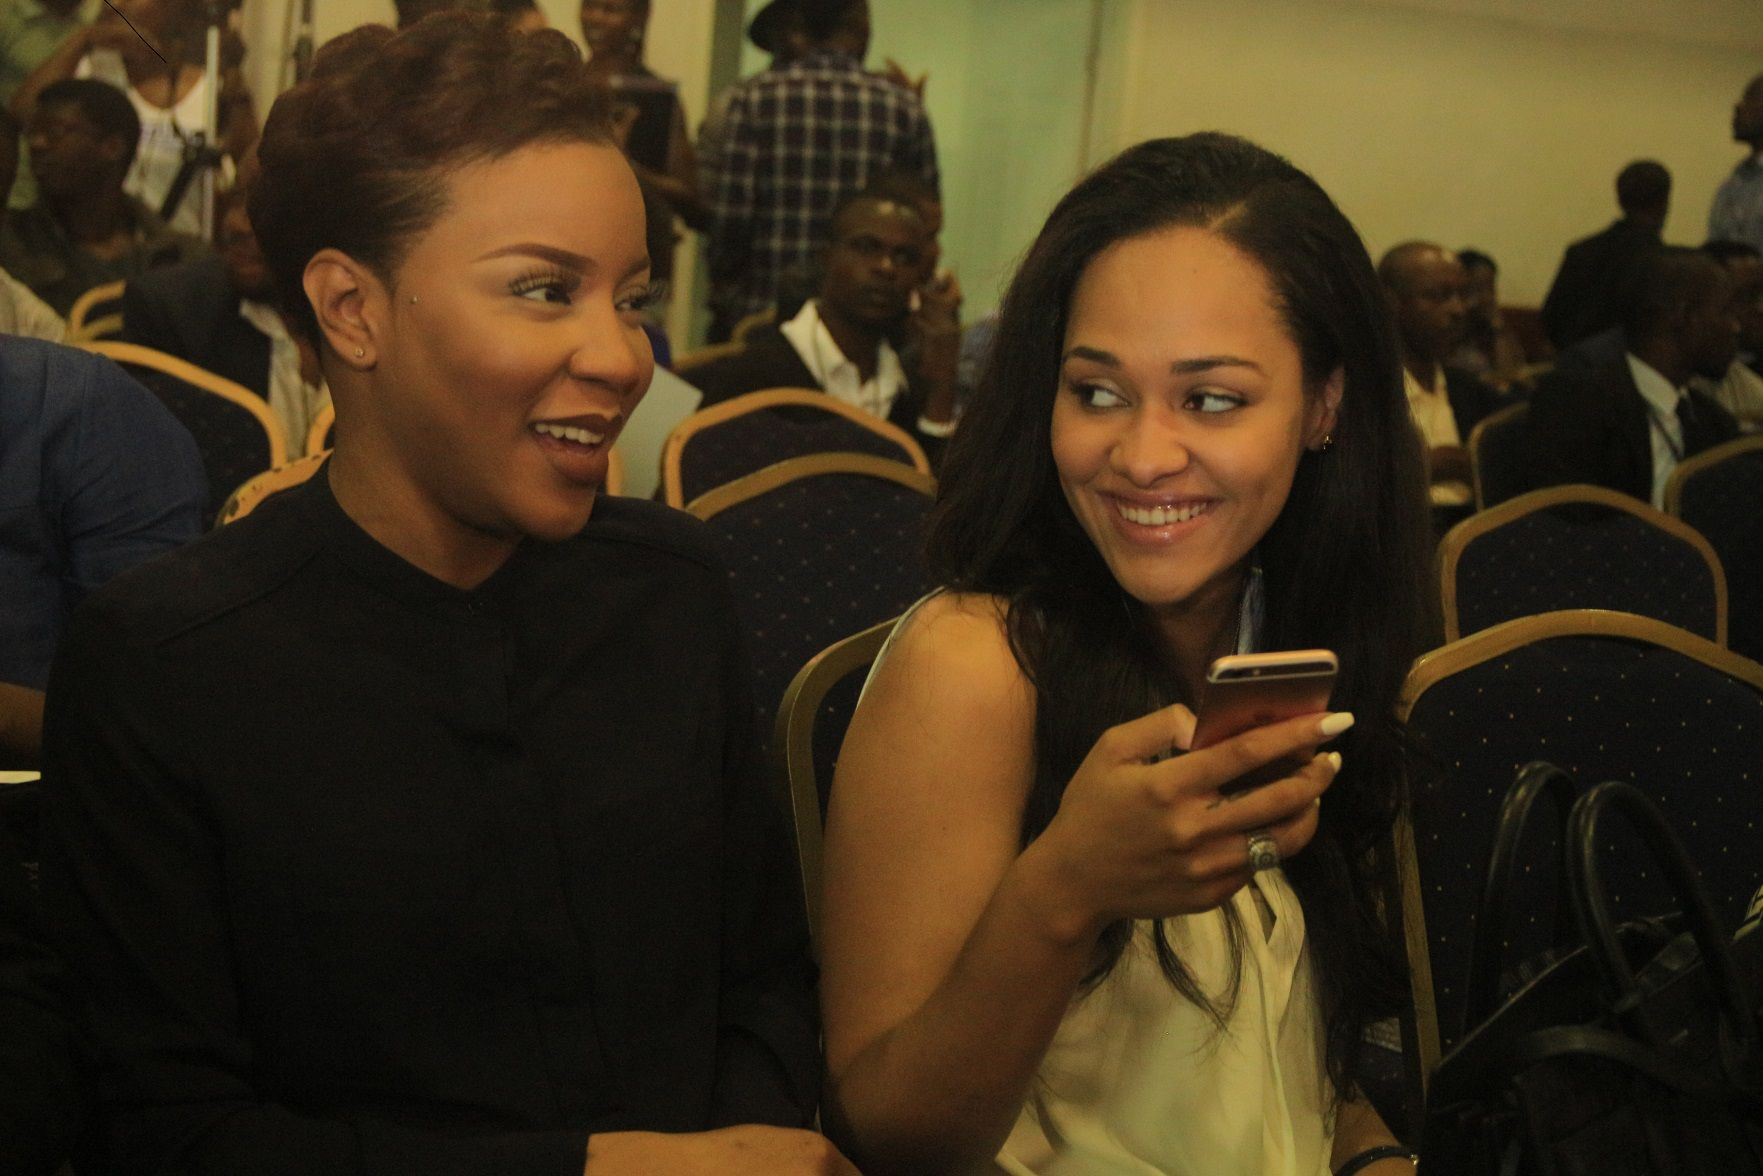 Experts at Social Media Week Lagos: Social media has put 'Nigeria on global fashion map'